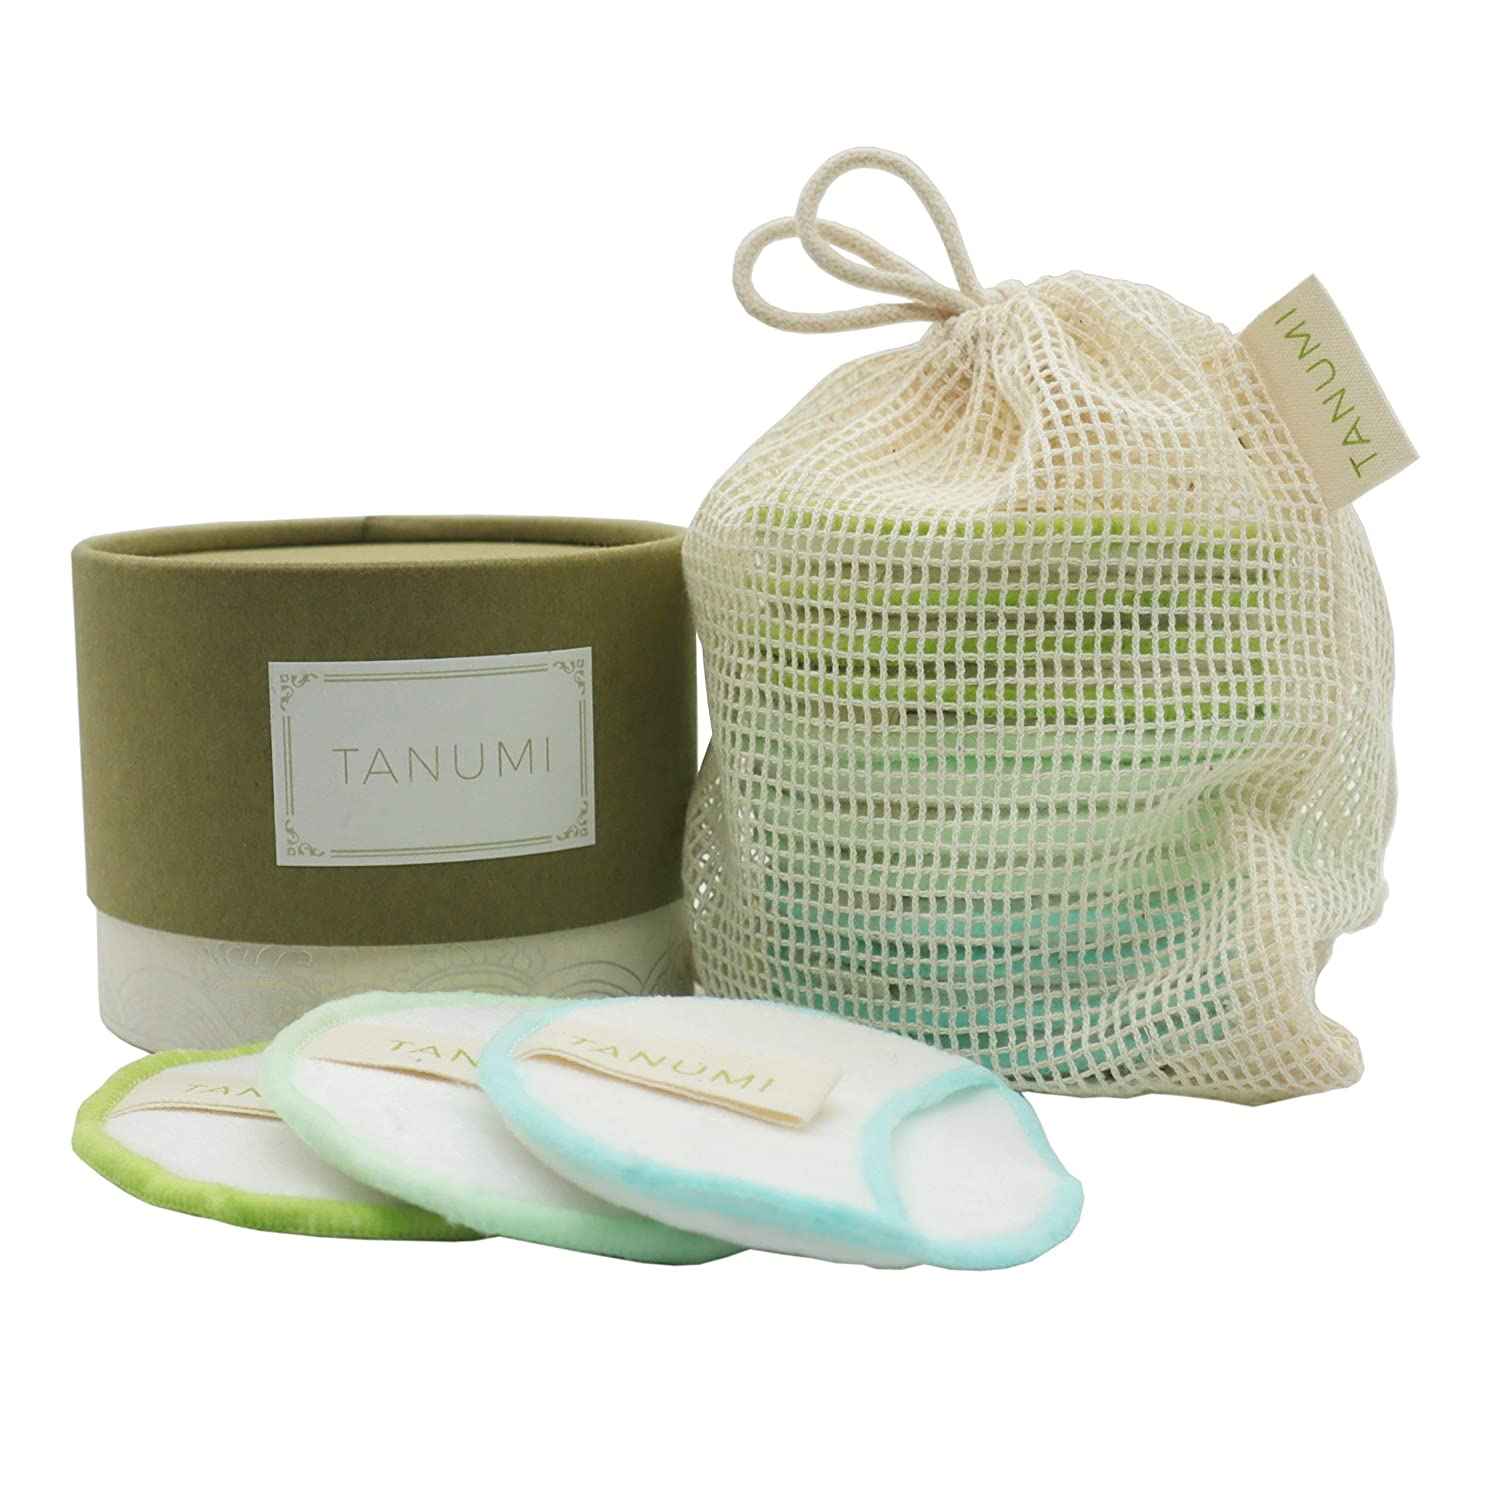 TANUMI Reusable Makeup Remover Cotton Pads | 12 Reusable Cotton Rounds/w Laundry Bag | Perfect Gift For Her| Skin Care Cleansing Round Remover Wipes